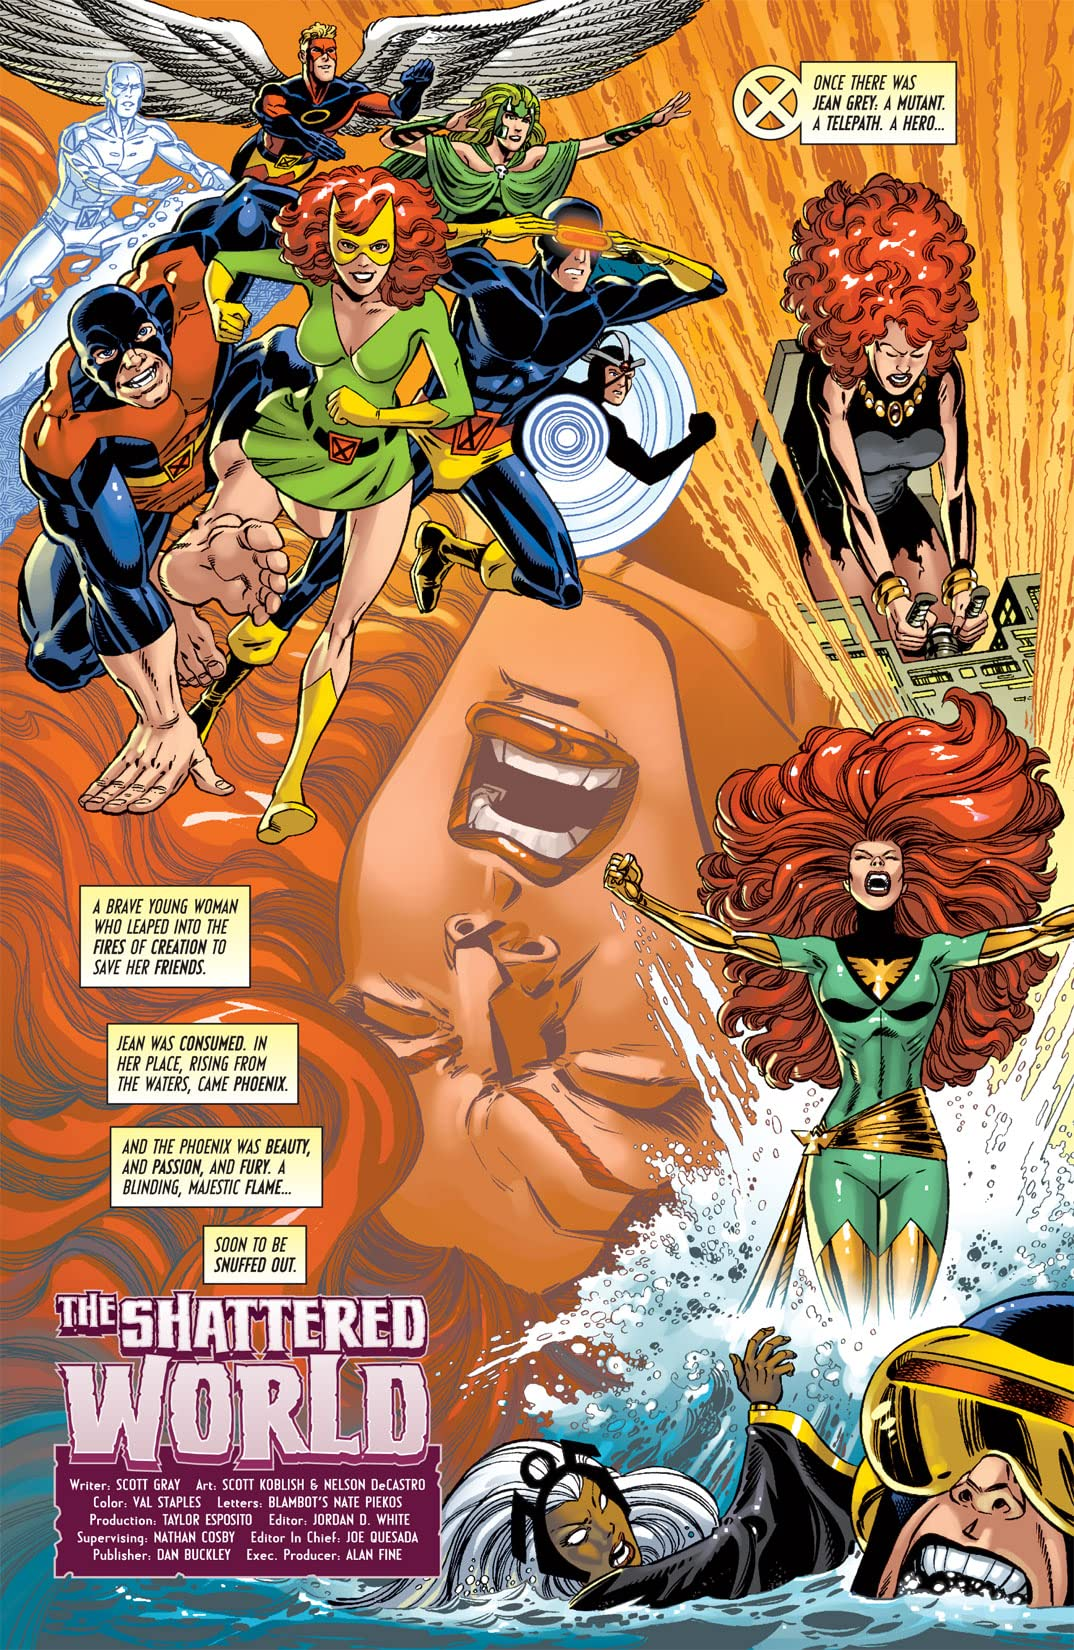 Uncanny X-Men: First Class #7 (of 8)